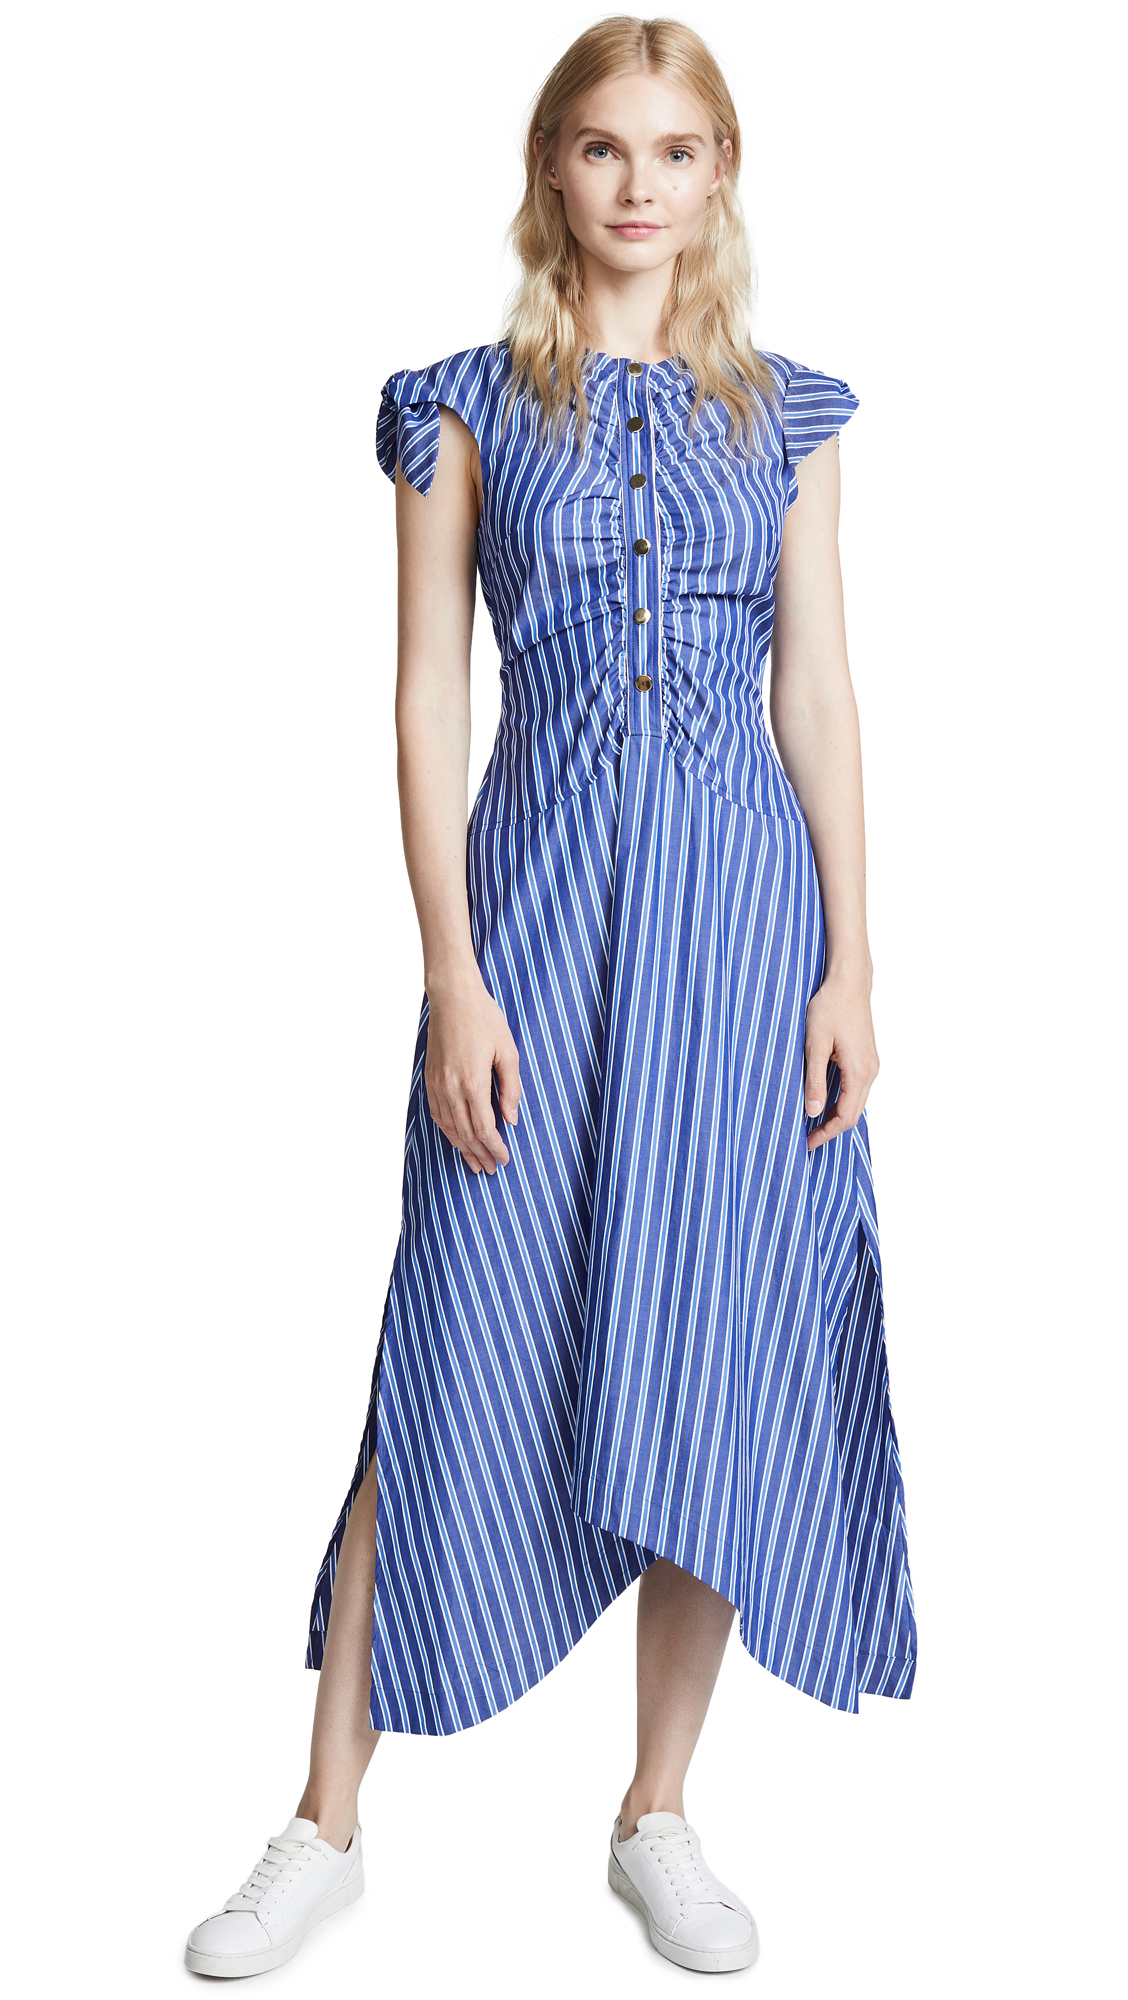 Derek Lam 10 Crosby Ruched Bodice Maxi Dress - Blue